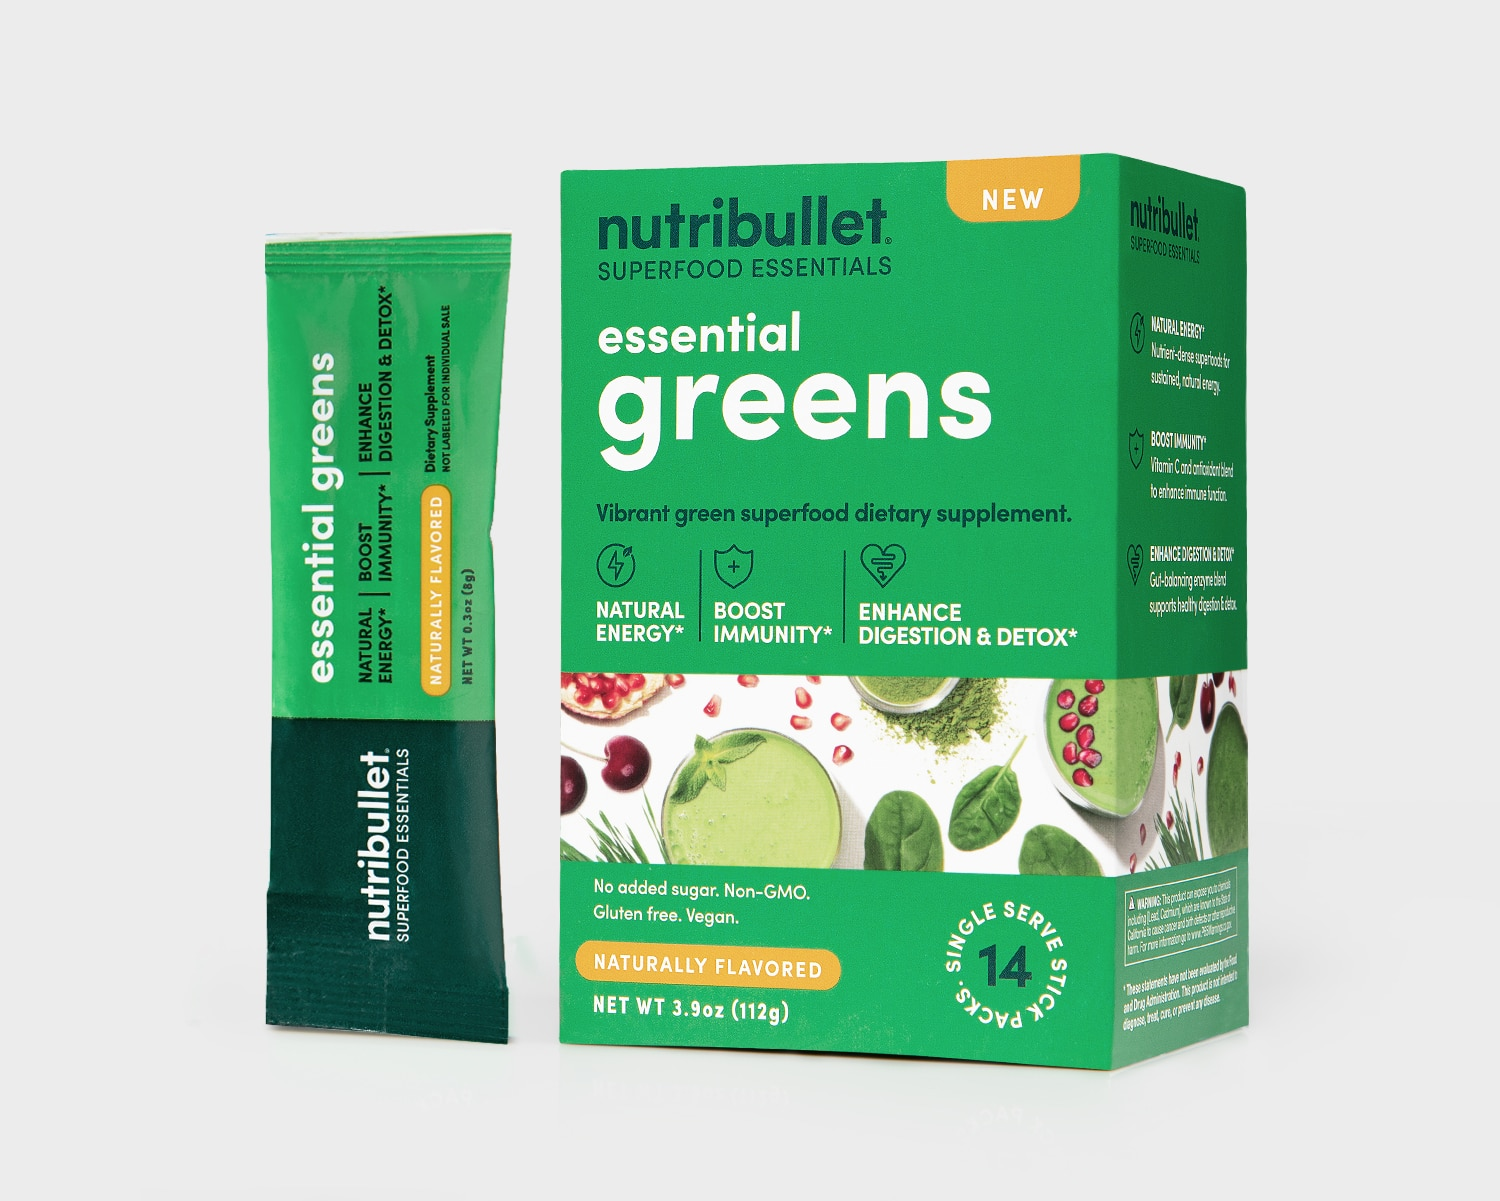 NutriBullet Essential Greens box with smoothies and green vegetables label and a packet of '14 stick packs'